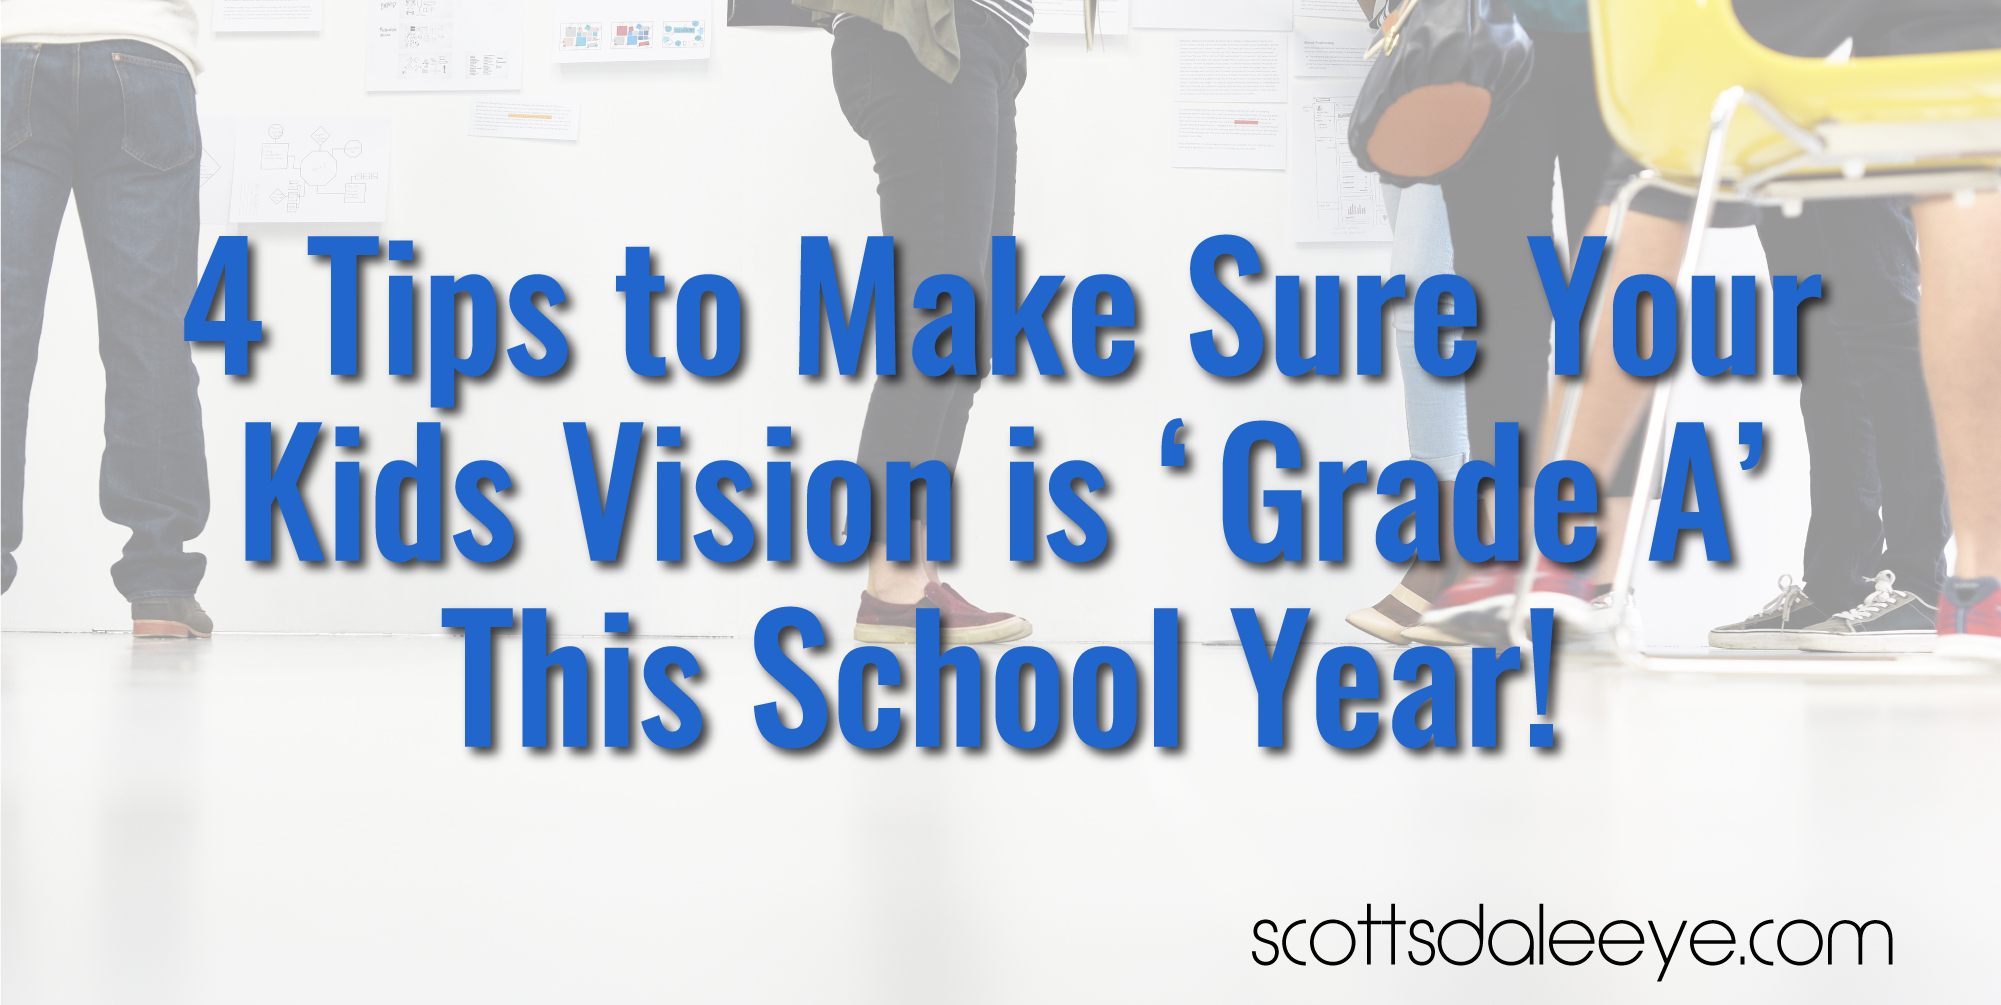 Four Tips to Make Sure Your Kids Vision is 'Grade A' This School Year